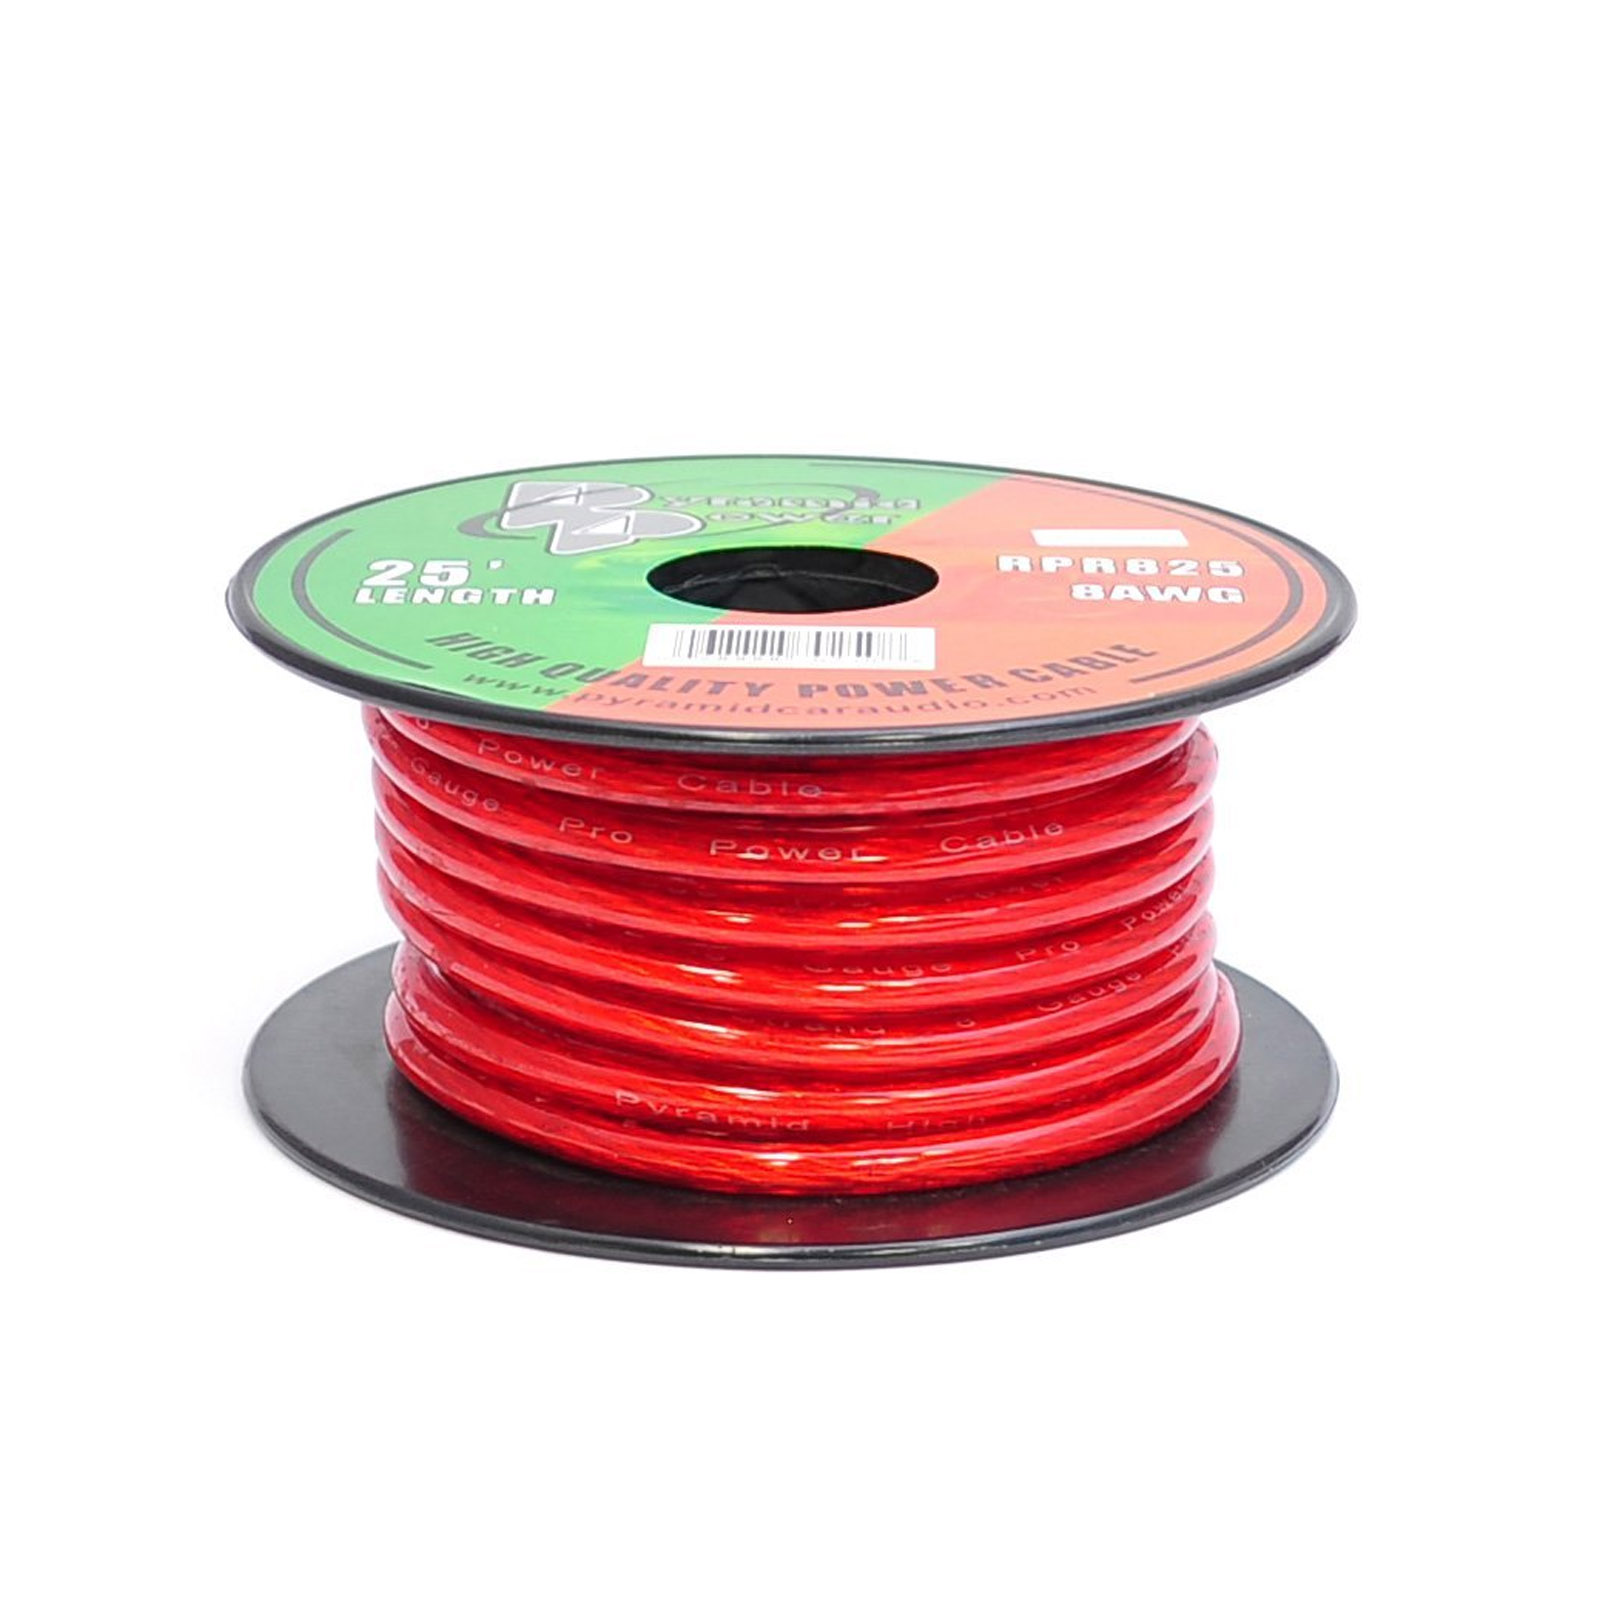 Pyramid - RPR825 - 8 Gauge Clear Red Power Wire 25 ft. OFC